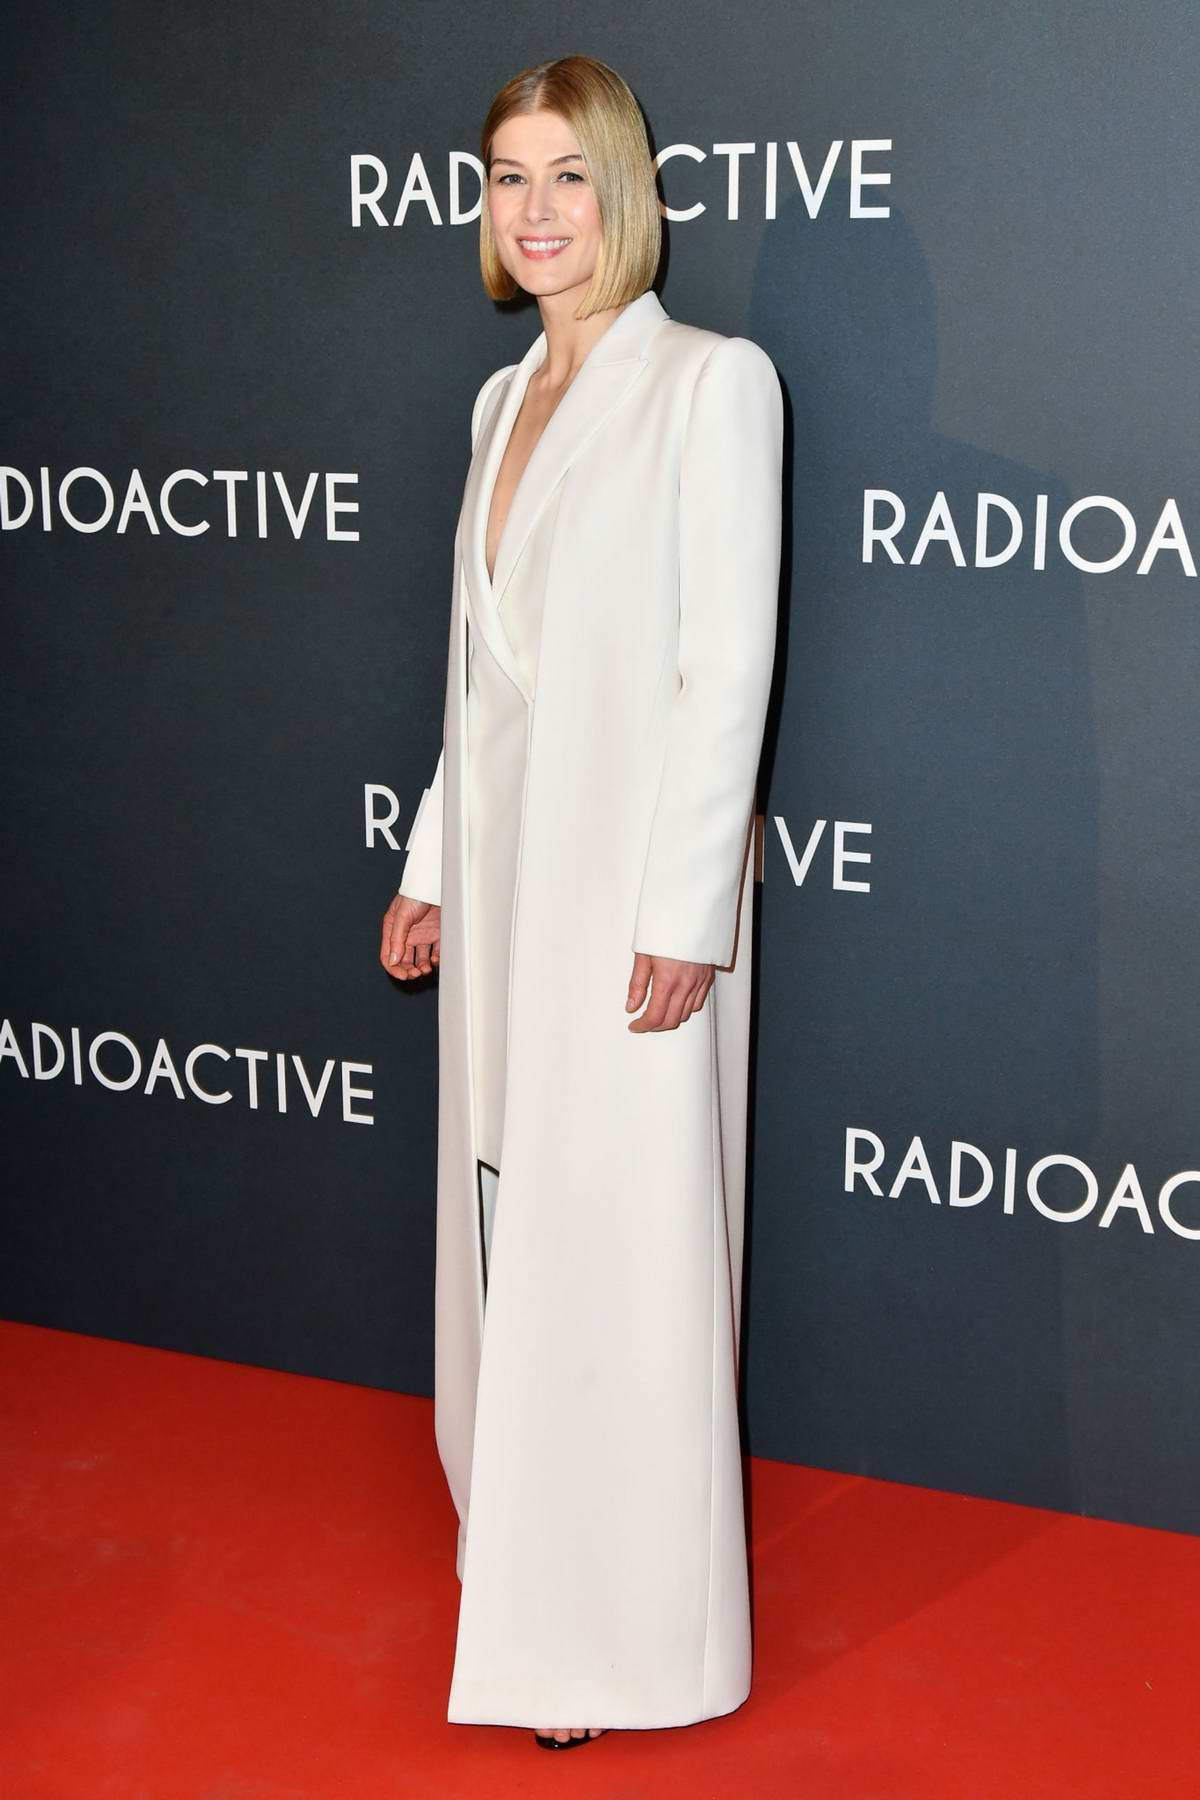 Rosamund Pike attends the Premiere of 'Radioactive' at UGC Danton in Paris, France